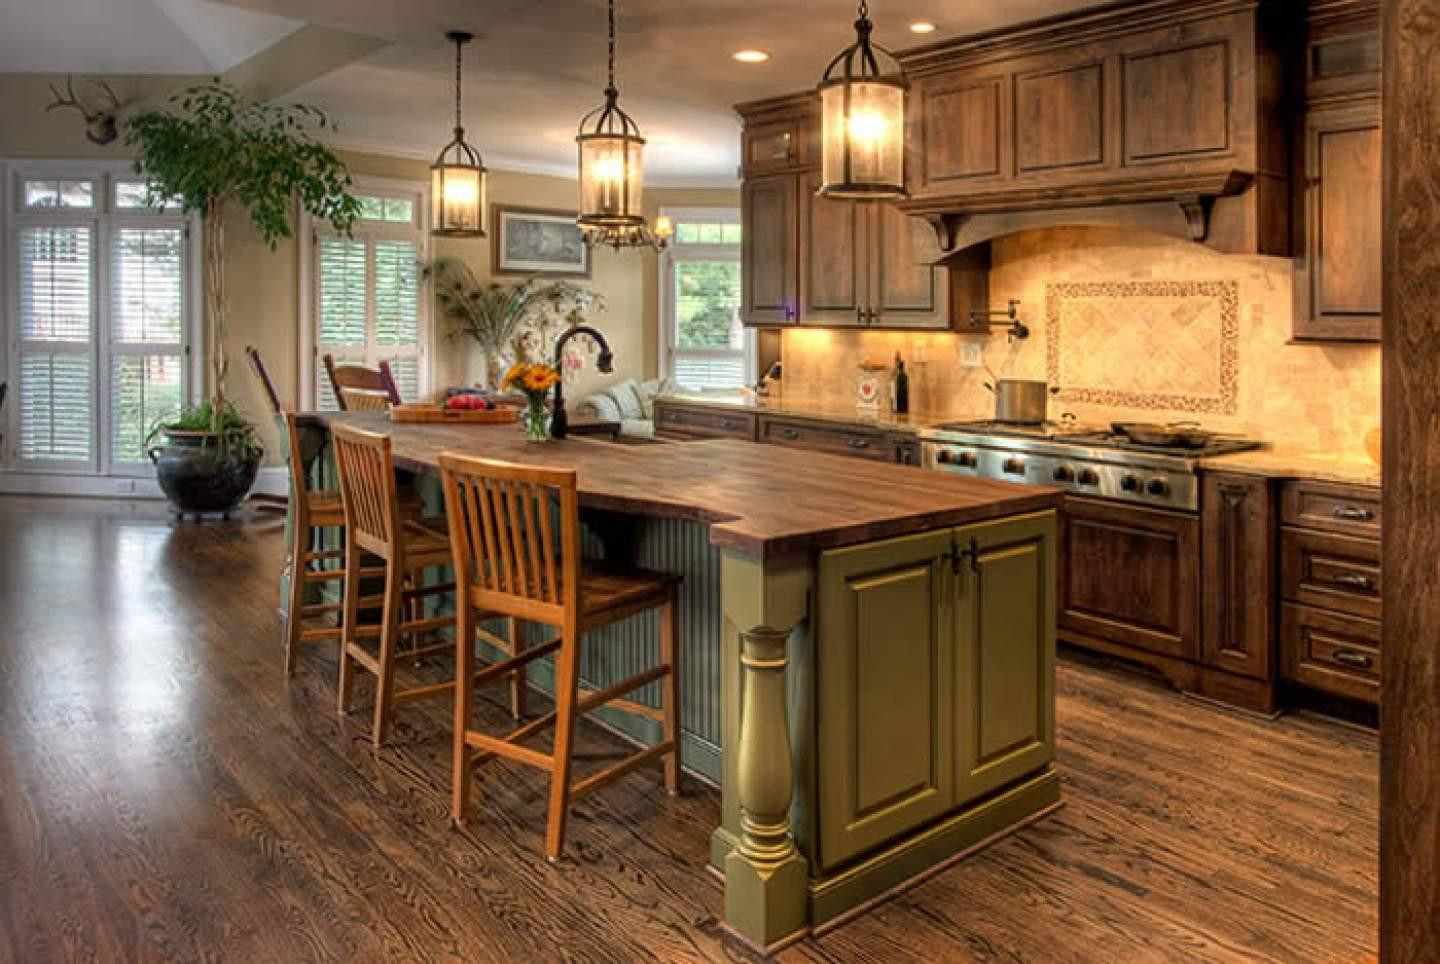 hardwood floor cleaning atlanta ga of lovely kitchens with hardwood floors and wood cabinets inspiration in interior extraordinaryod floors in kitchen problems laminate flooring pros and cons with cabinets wood floors